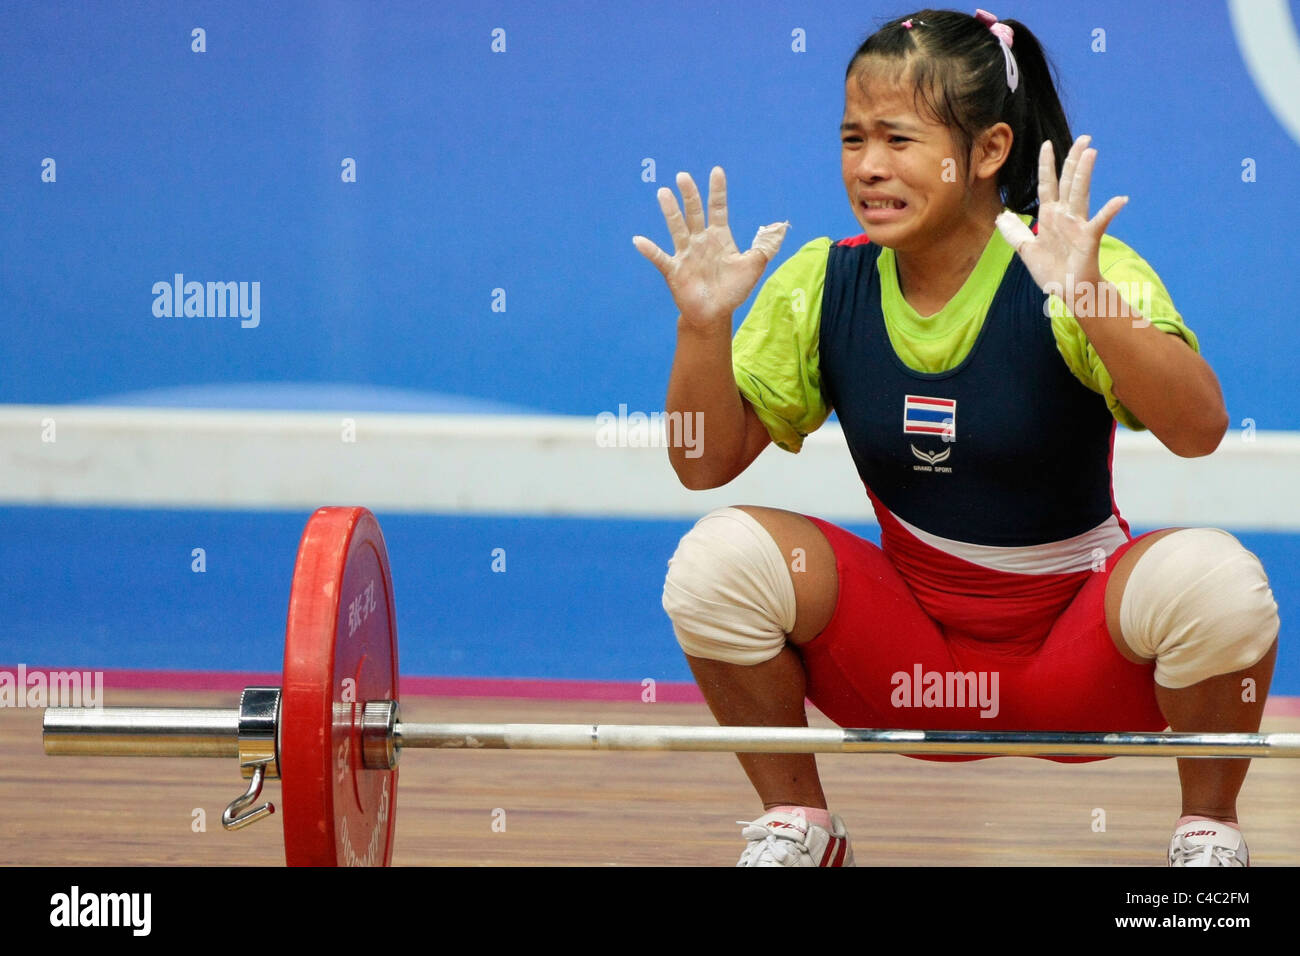 Thailand's Sirivimon Pramongkhol reacts after failing to lift during her snatch routine. - Stock Image